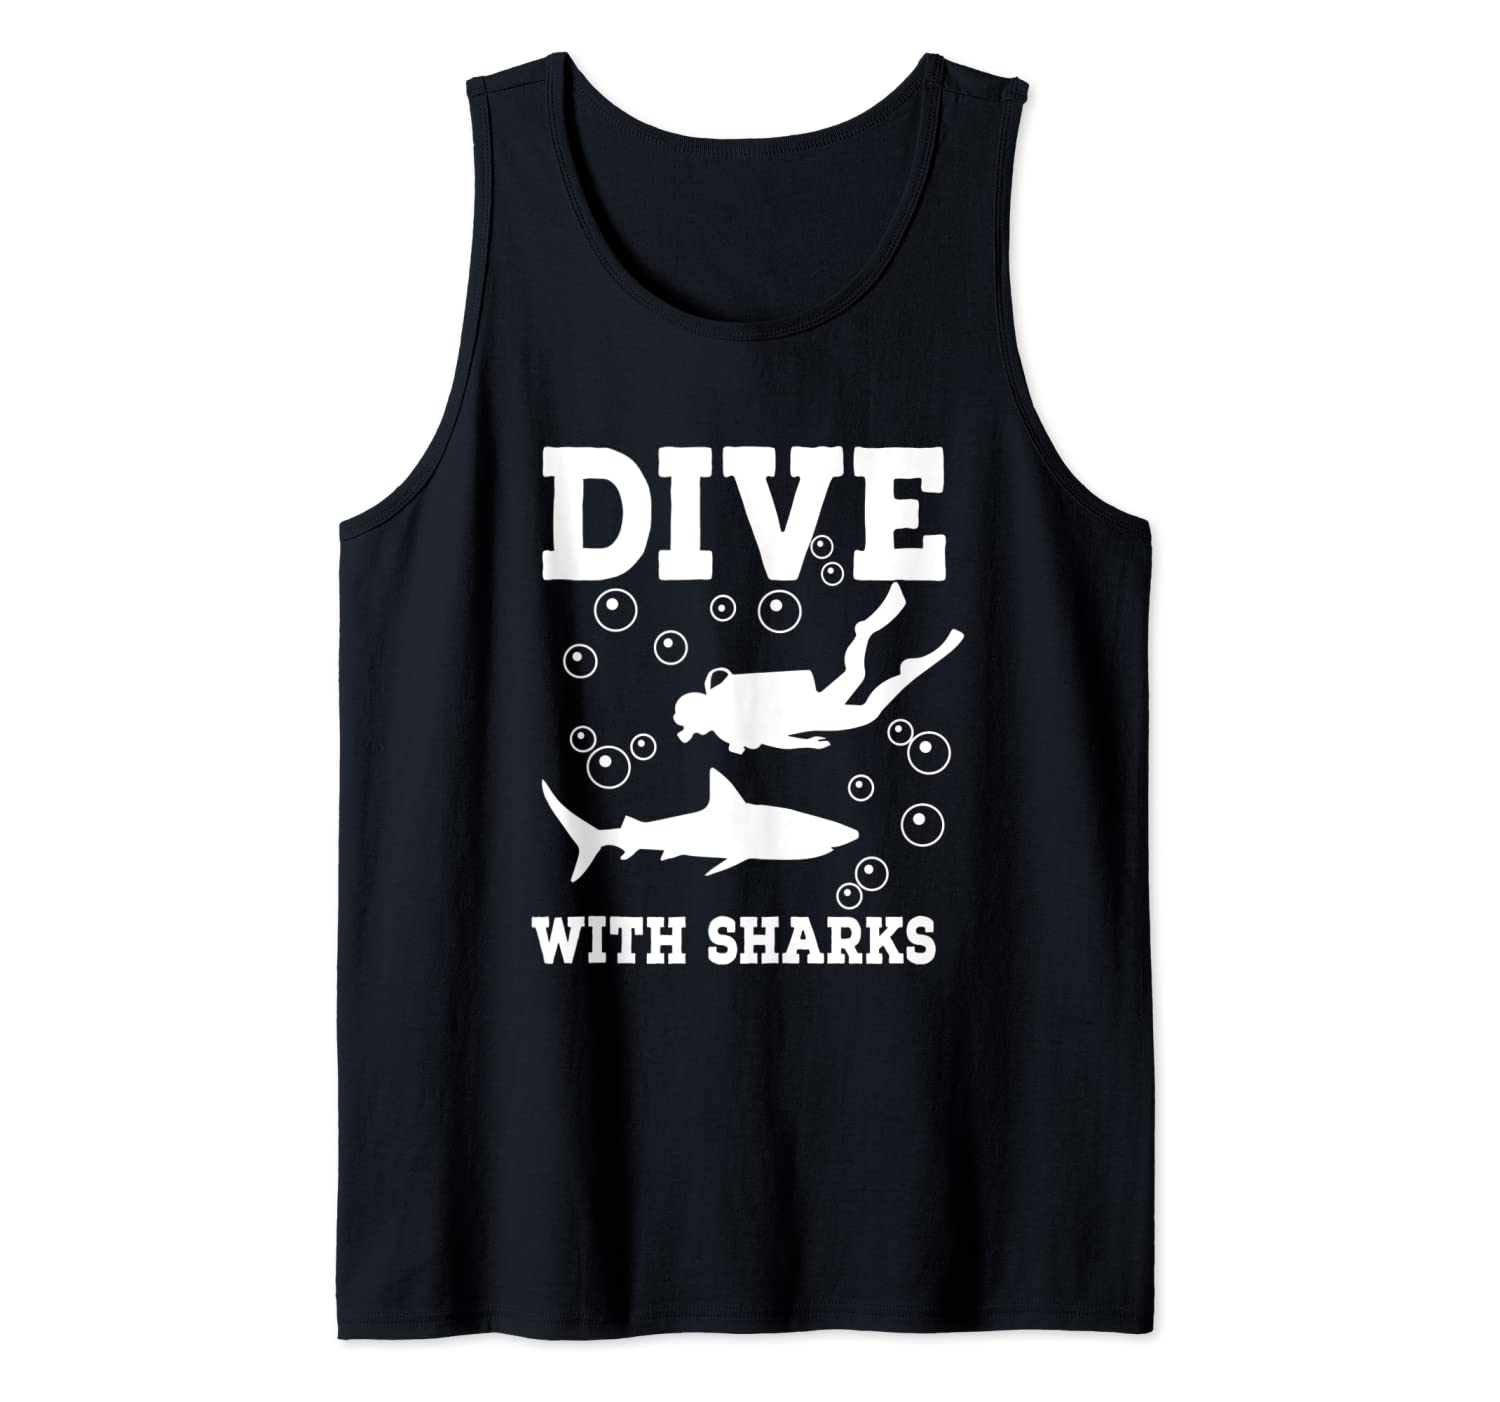 Dive with Sharks Tank Top